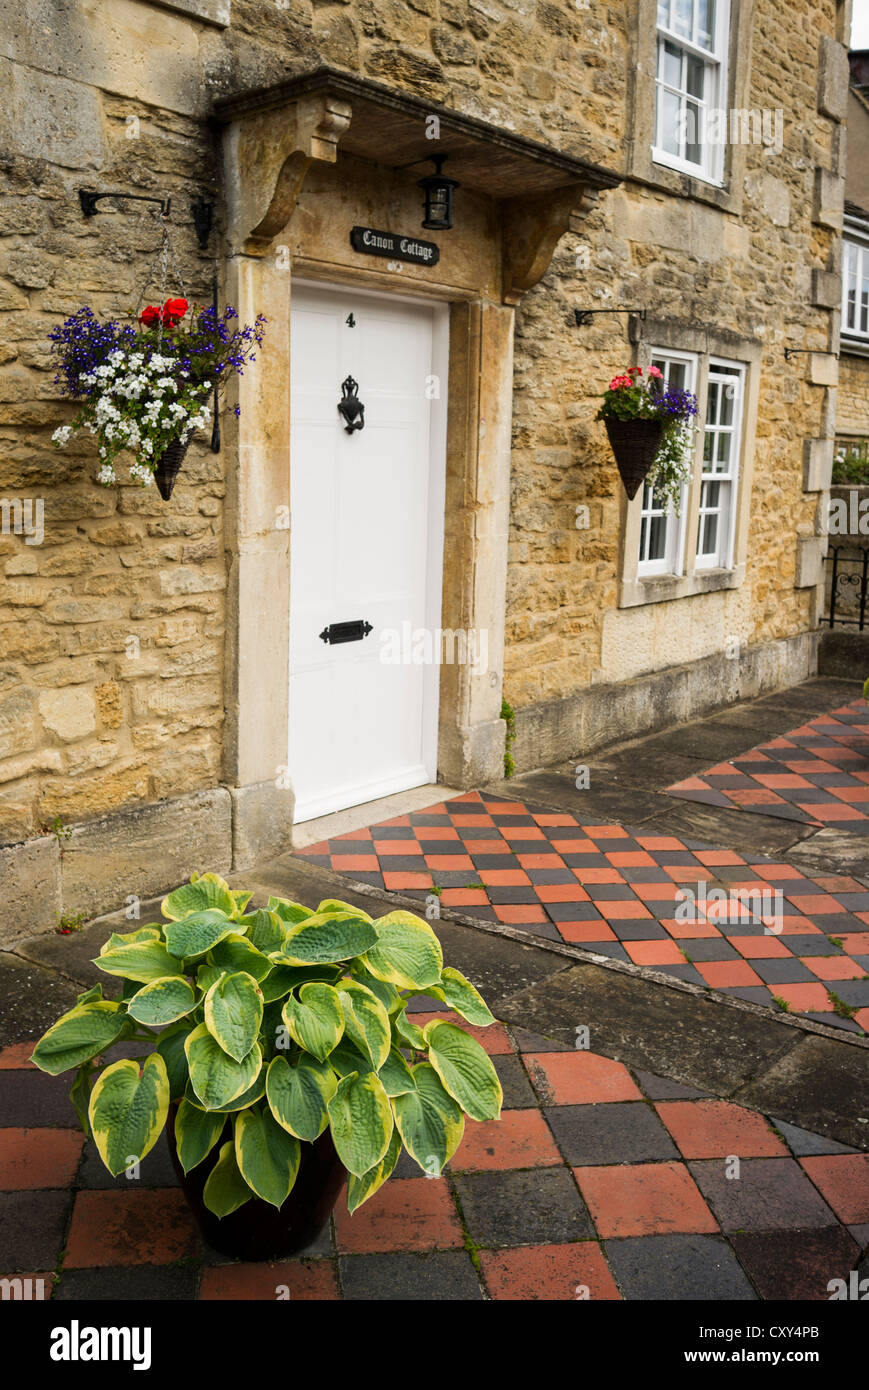 Hosta Decorating A Simple Tiled Patio In Front Garden Of Town House In UK    Stock